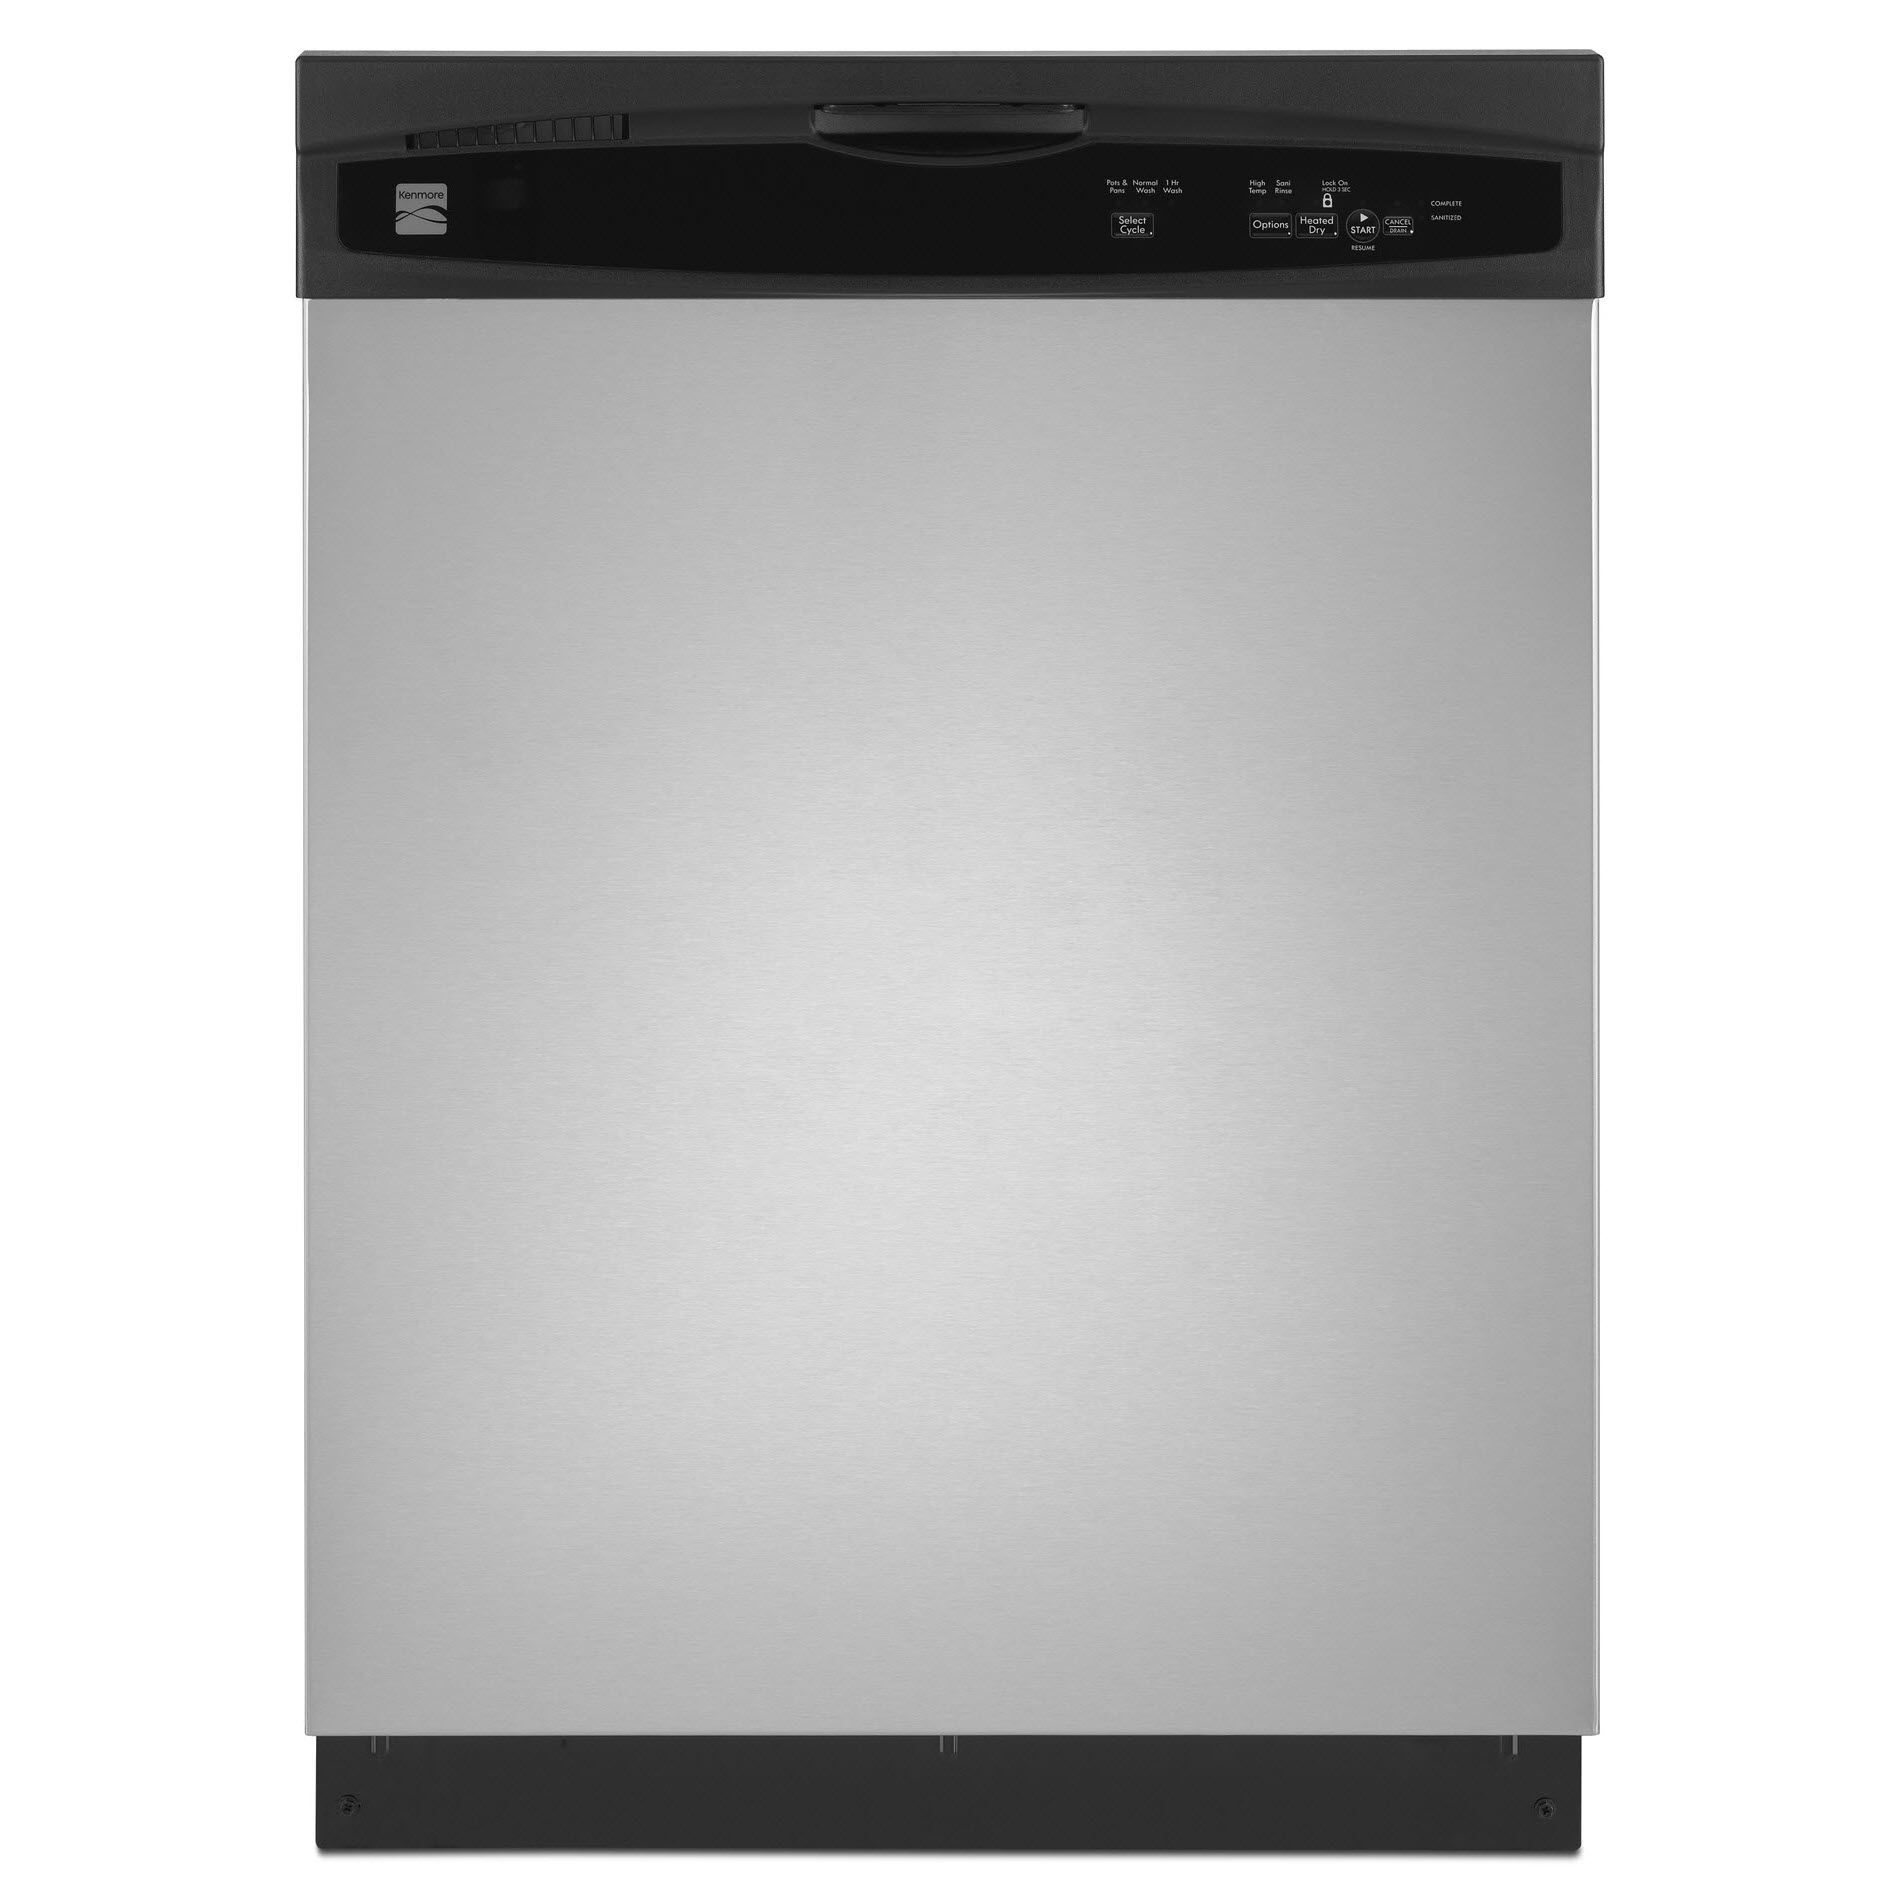 "Kenmore 24"" BuiltIn Dishwasher Stainless Steel ENERGY"